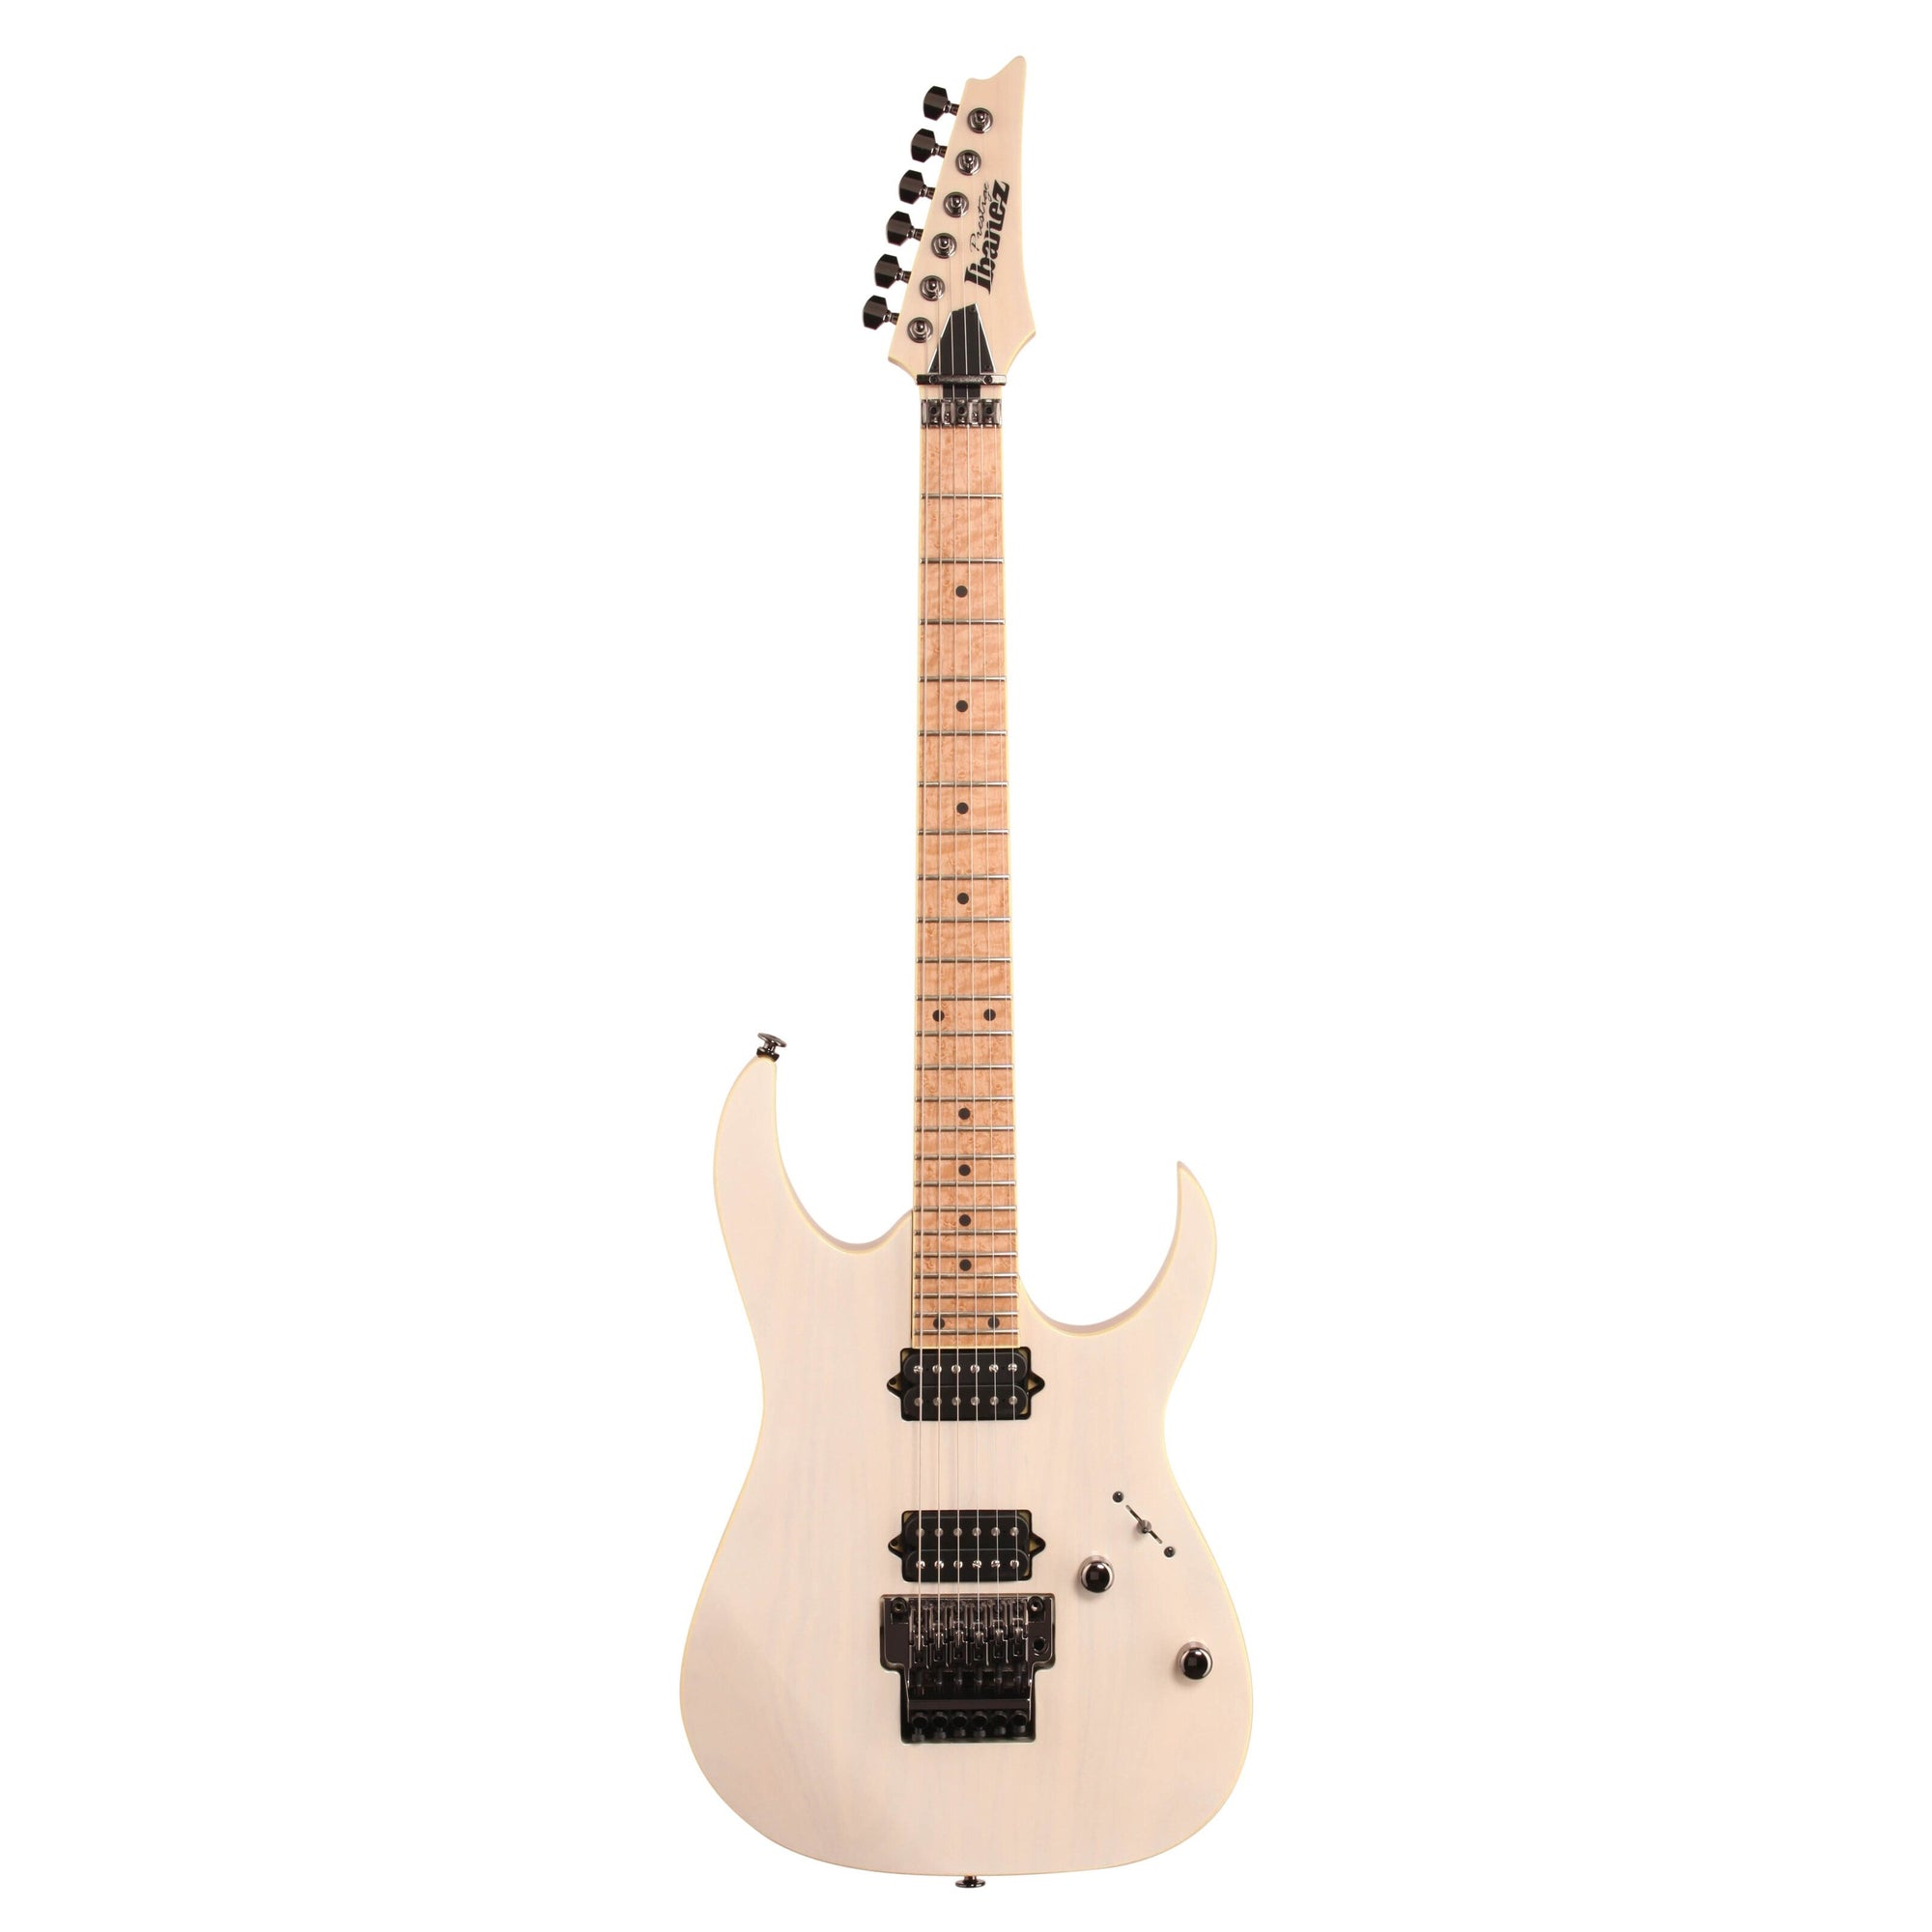 Ibanez RG652AHM Prestige Electric Guitar (with Case), Antique White Blonde